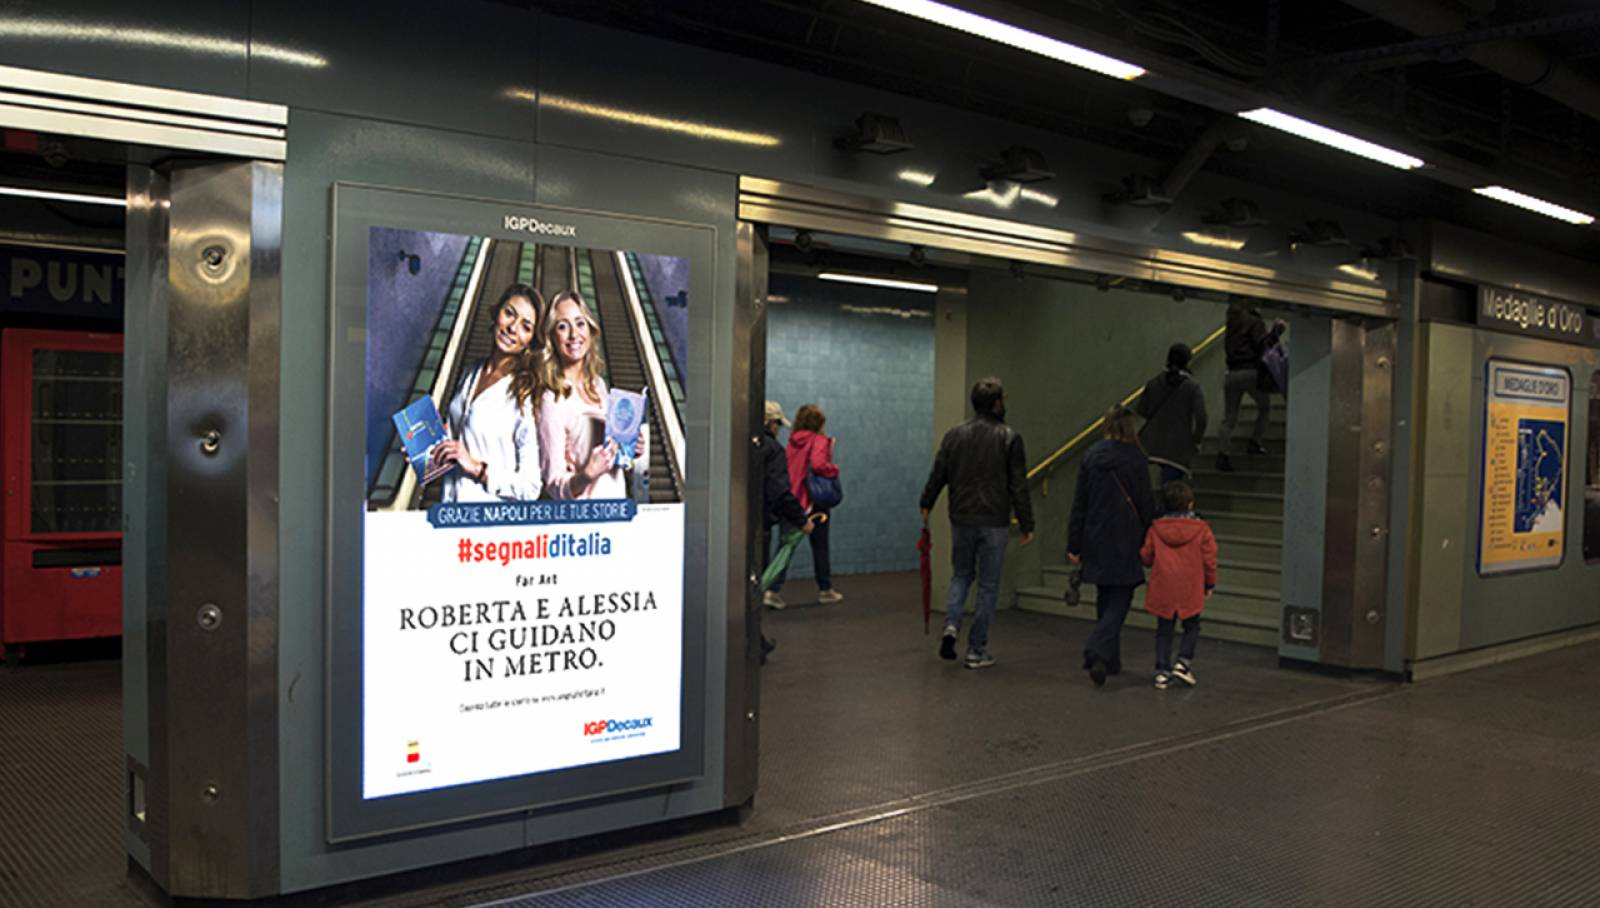 undergound OOH advertising IGPDecaux mupi in Naples for segnali d'Italia thanks campaign